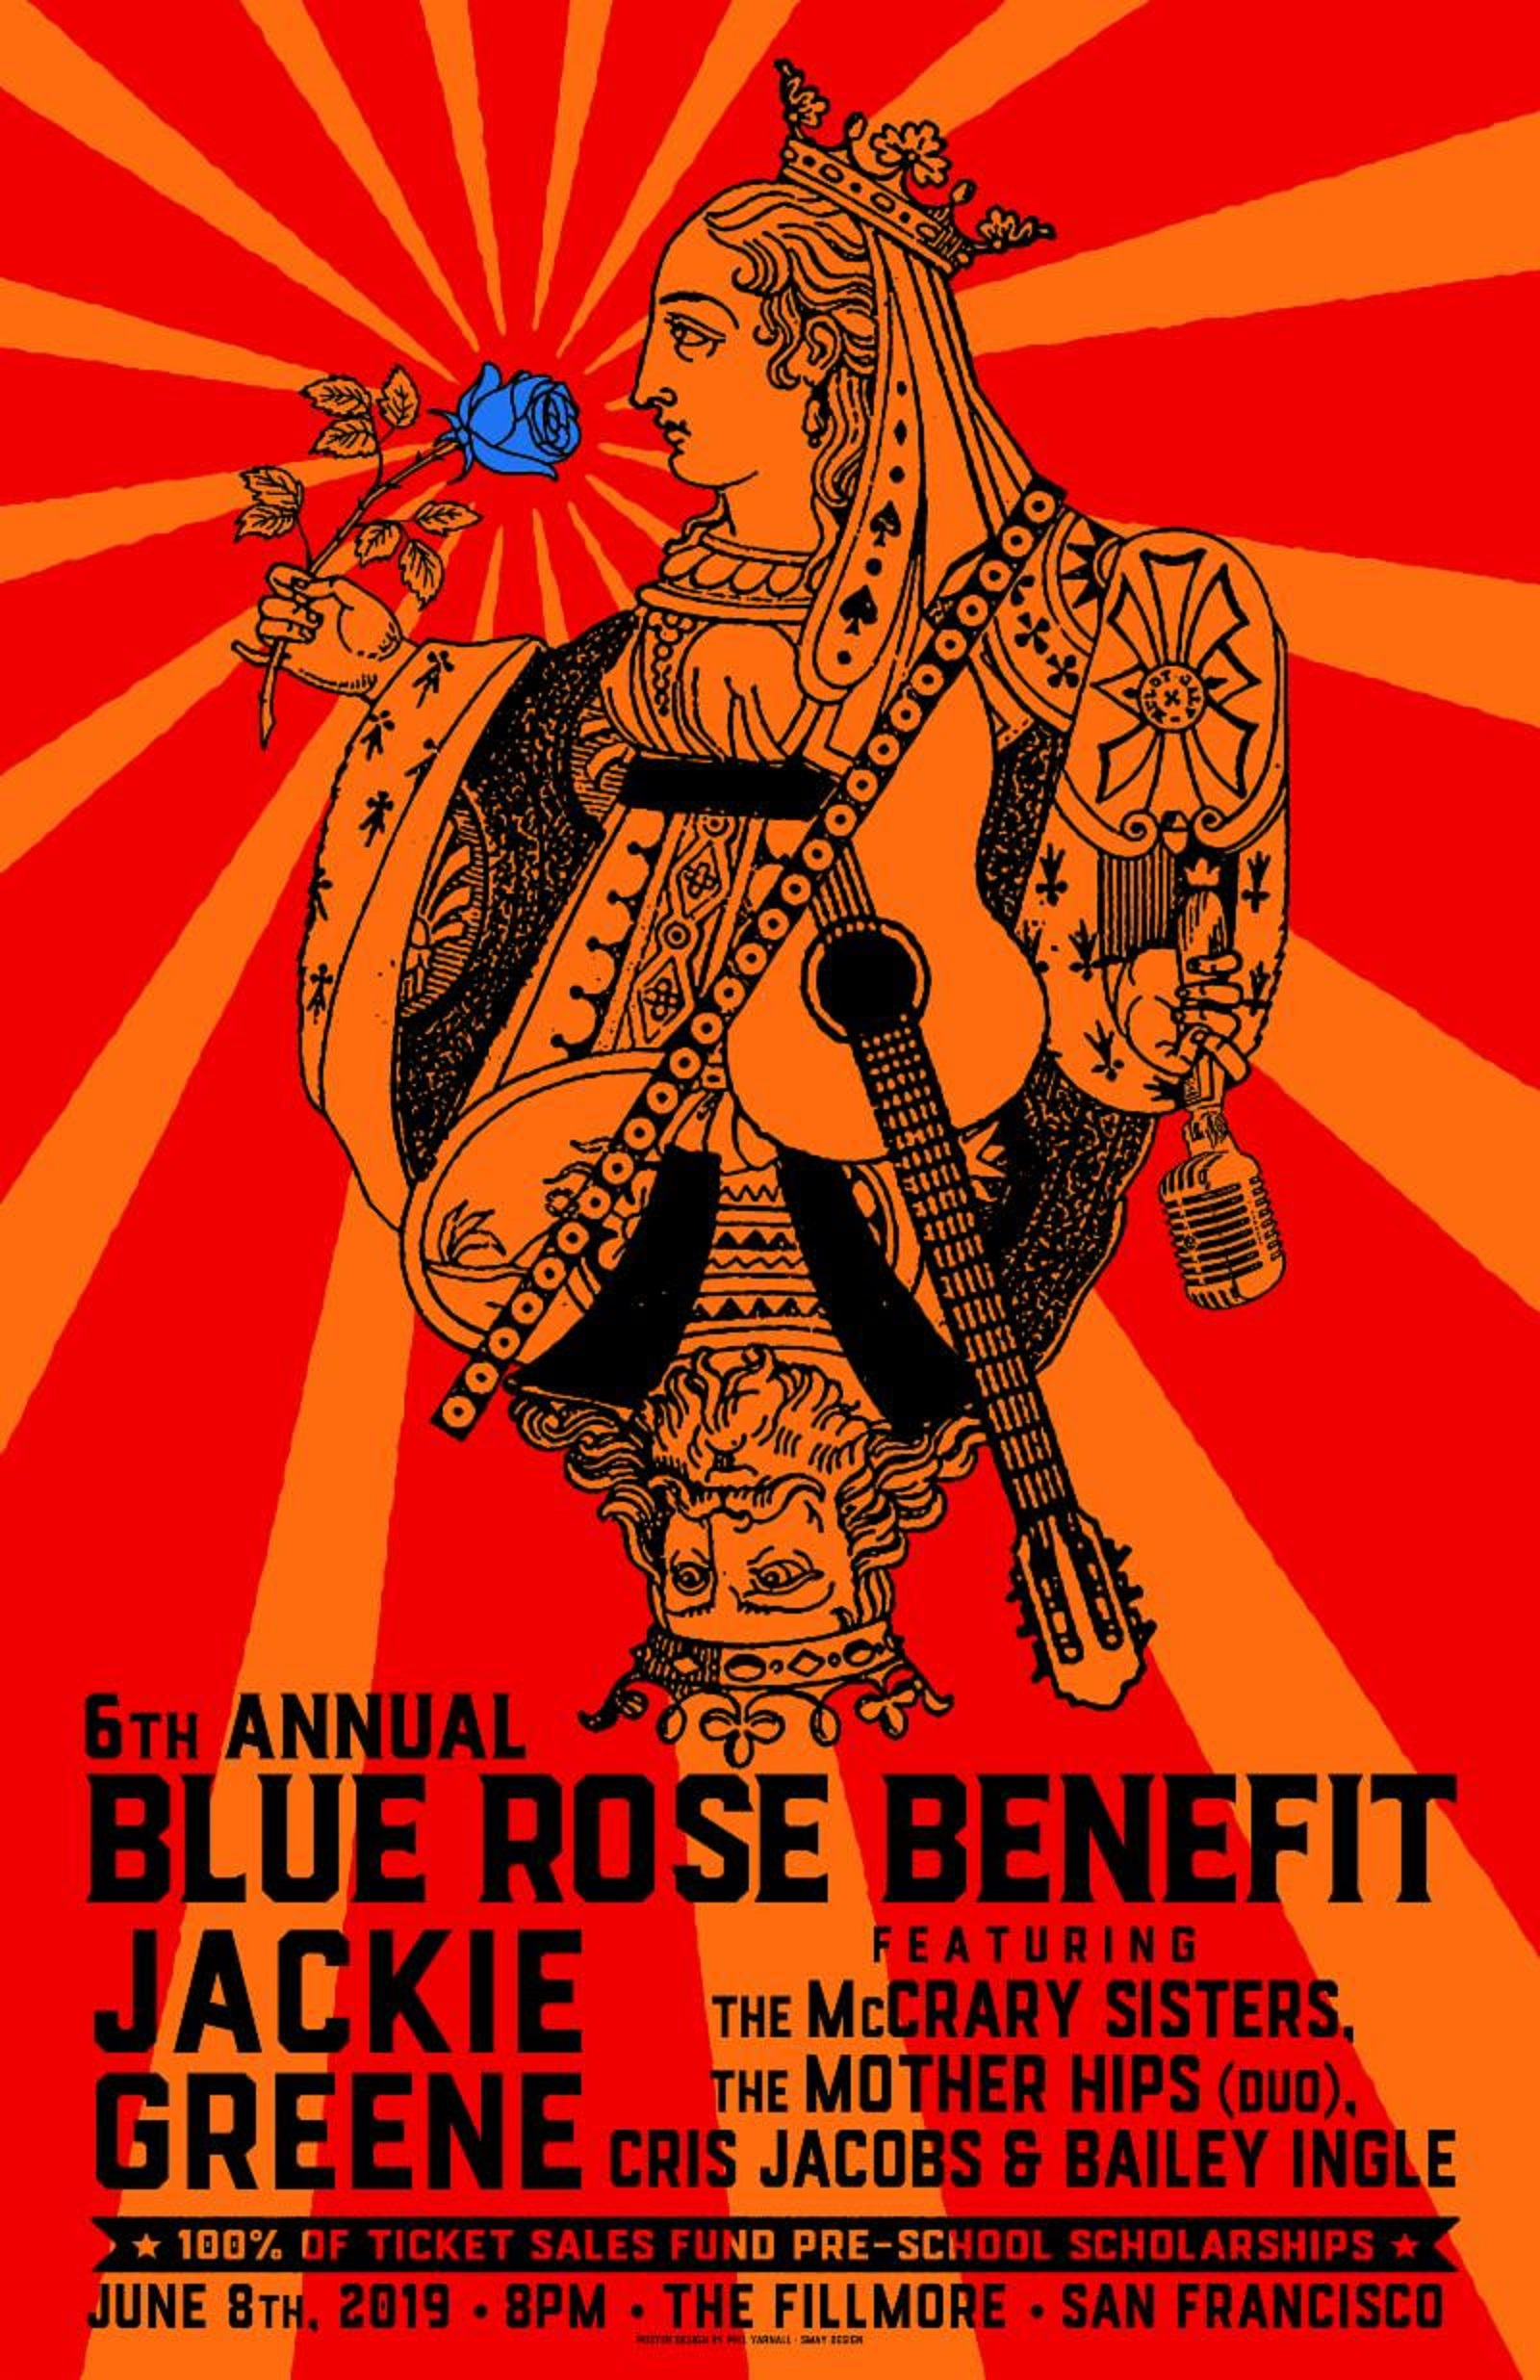 The McCrary Sisters and The Mother Hips Added to Lineup for 6th Annual Blue Rose Music Benefit